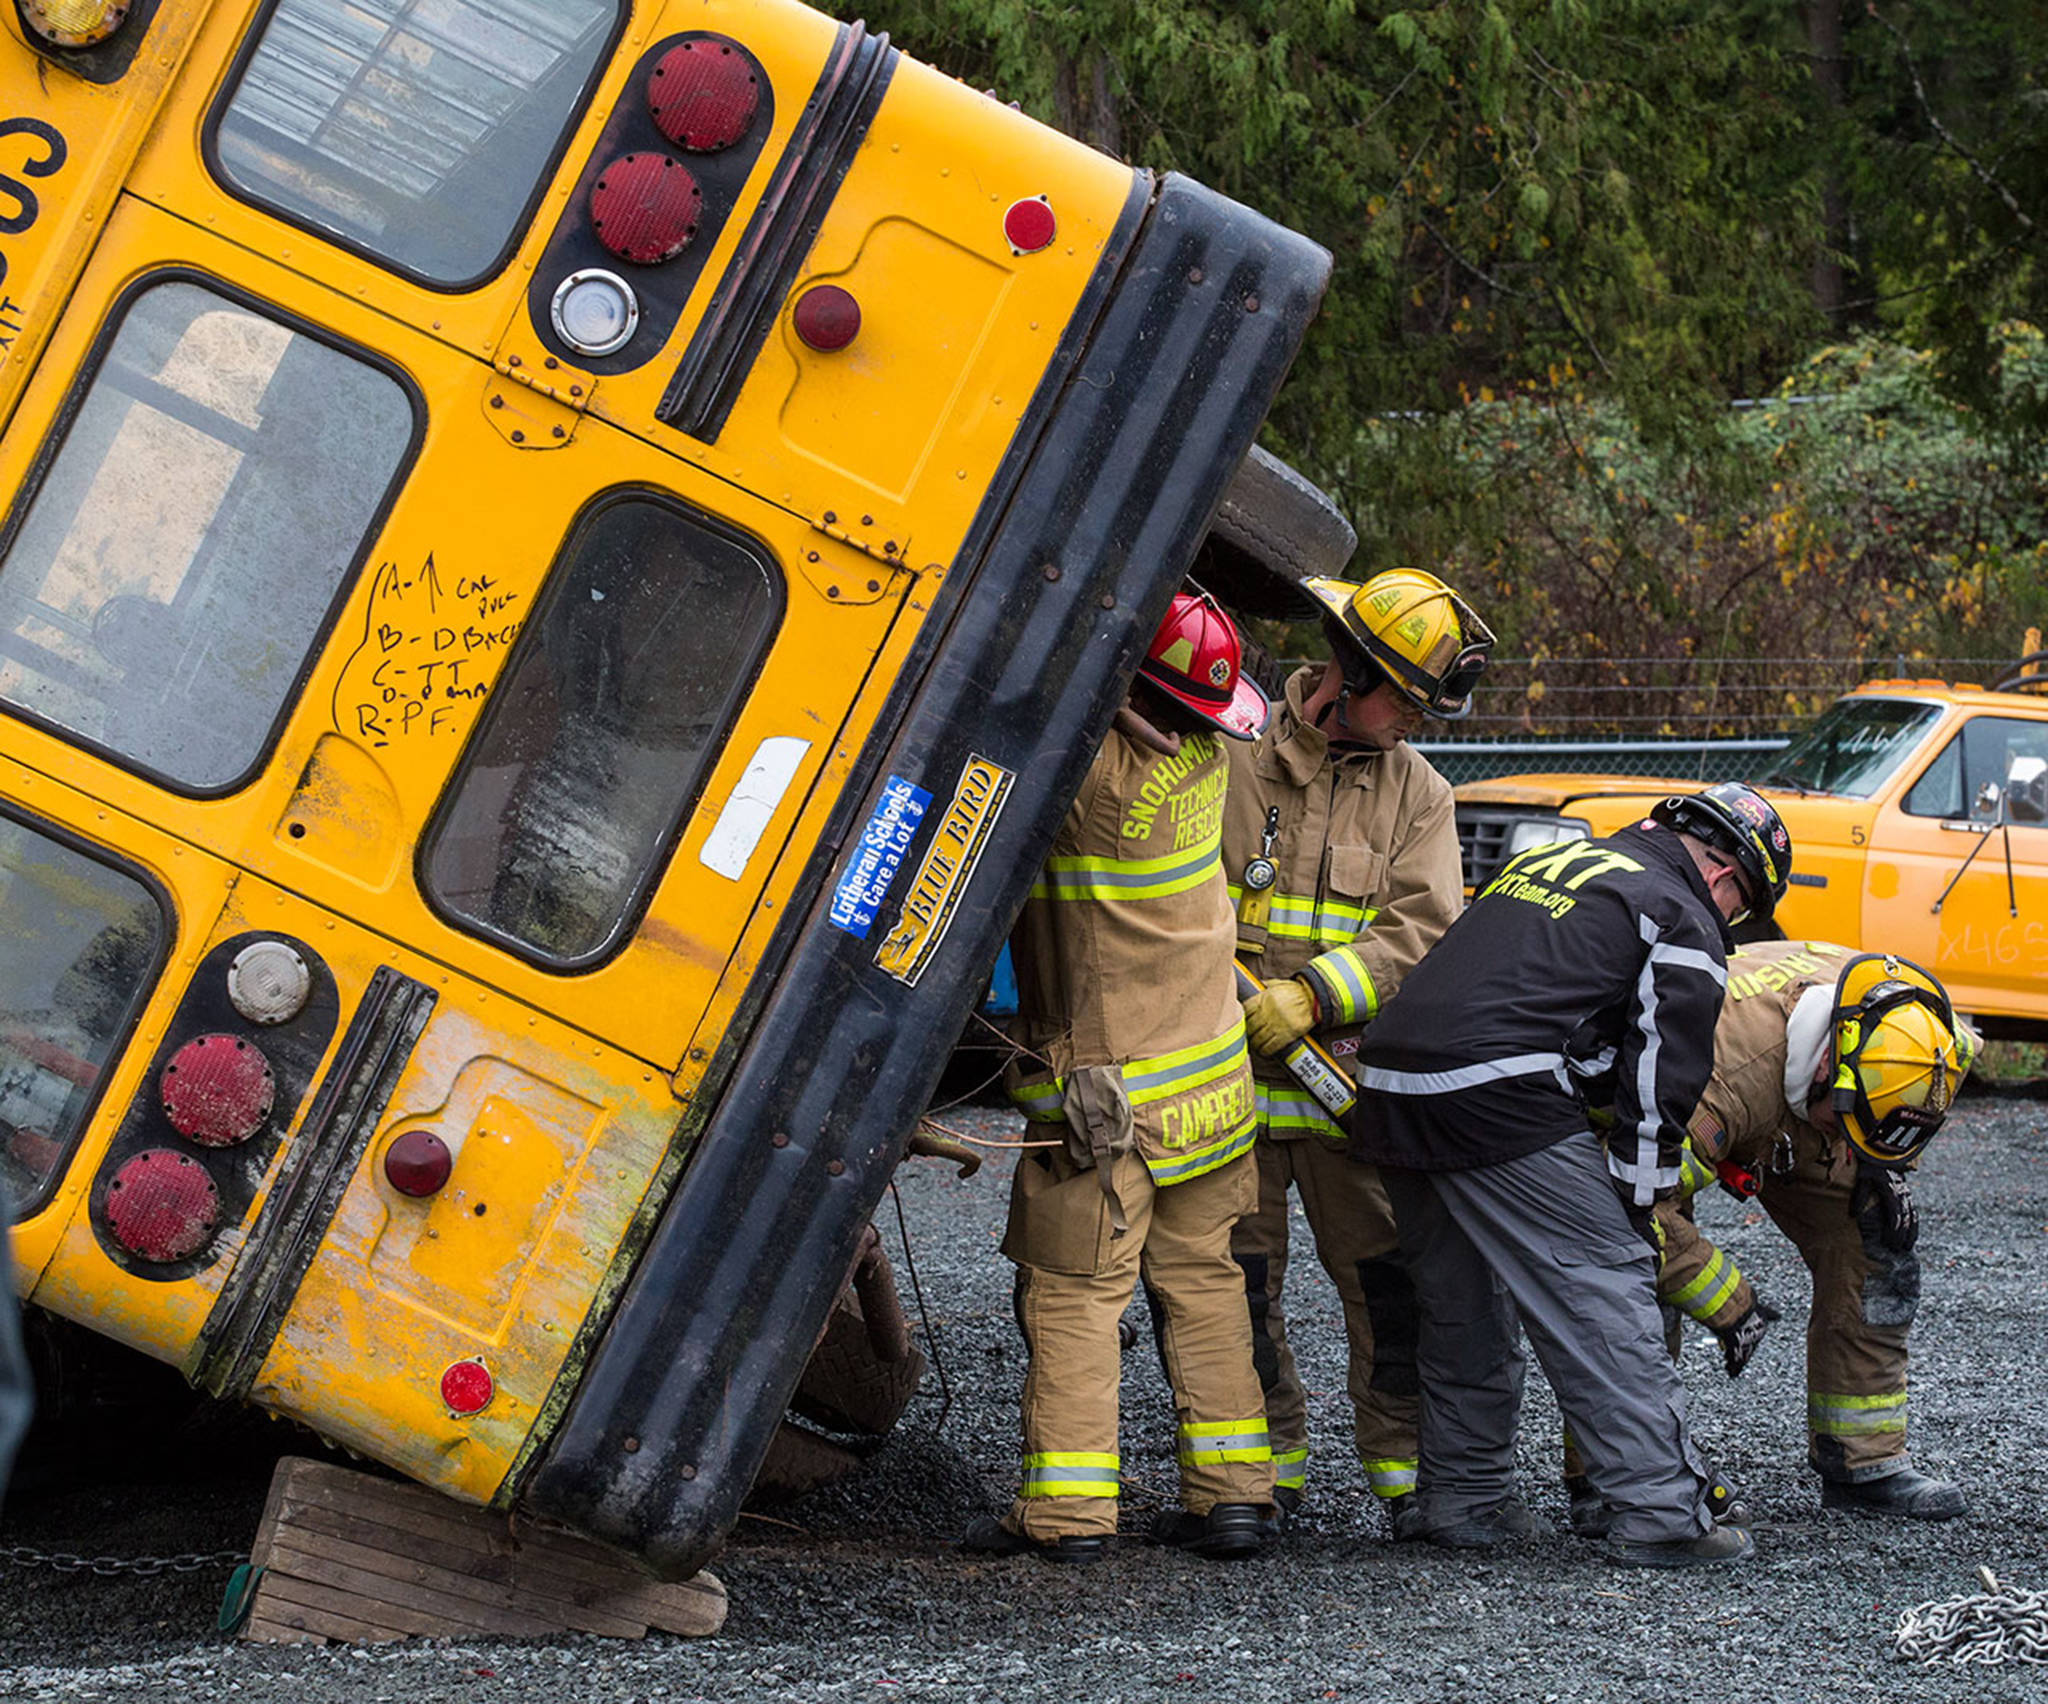 Snohomish county area firefigfhters brace and stabilize a rolled bus as they practice multi-agency response training for vehicle accidents at NW Auto Recyclers on Nov. 15 in Lake Stevens. (Andy Bronson / The Herald)